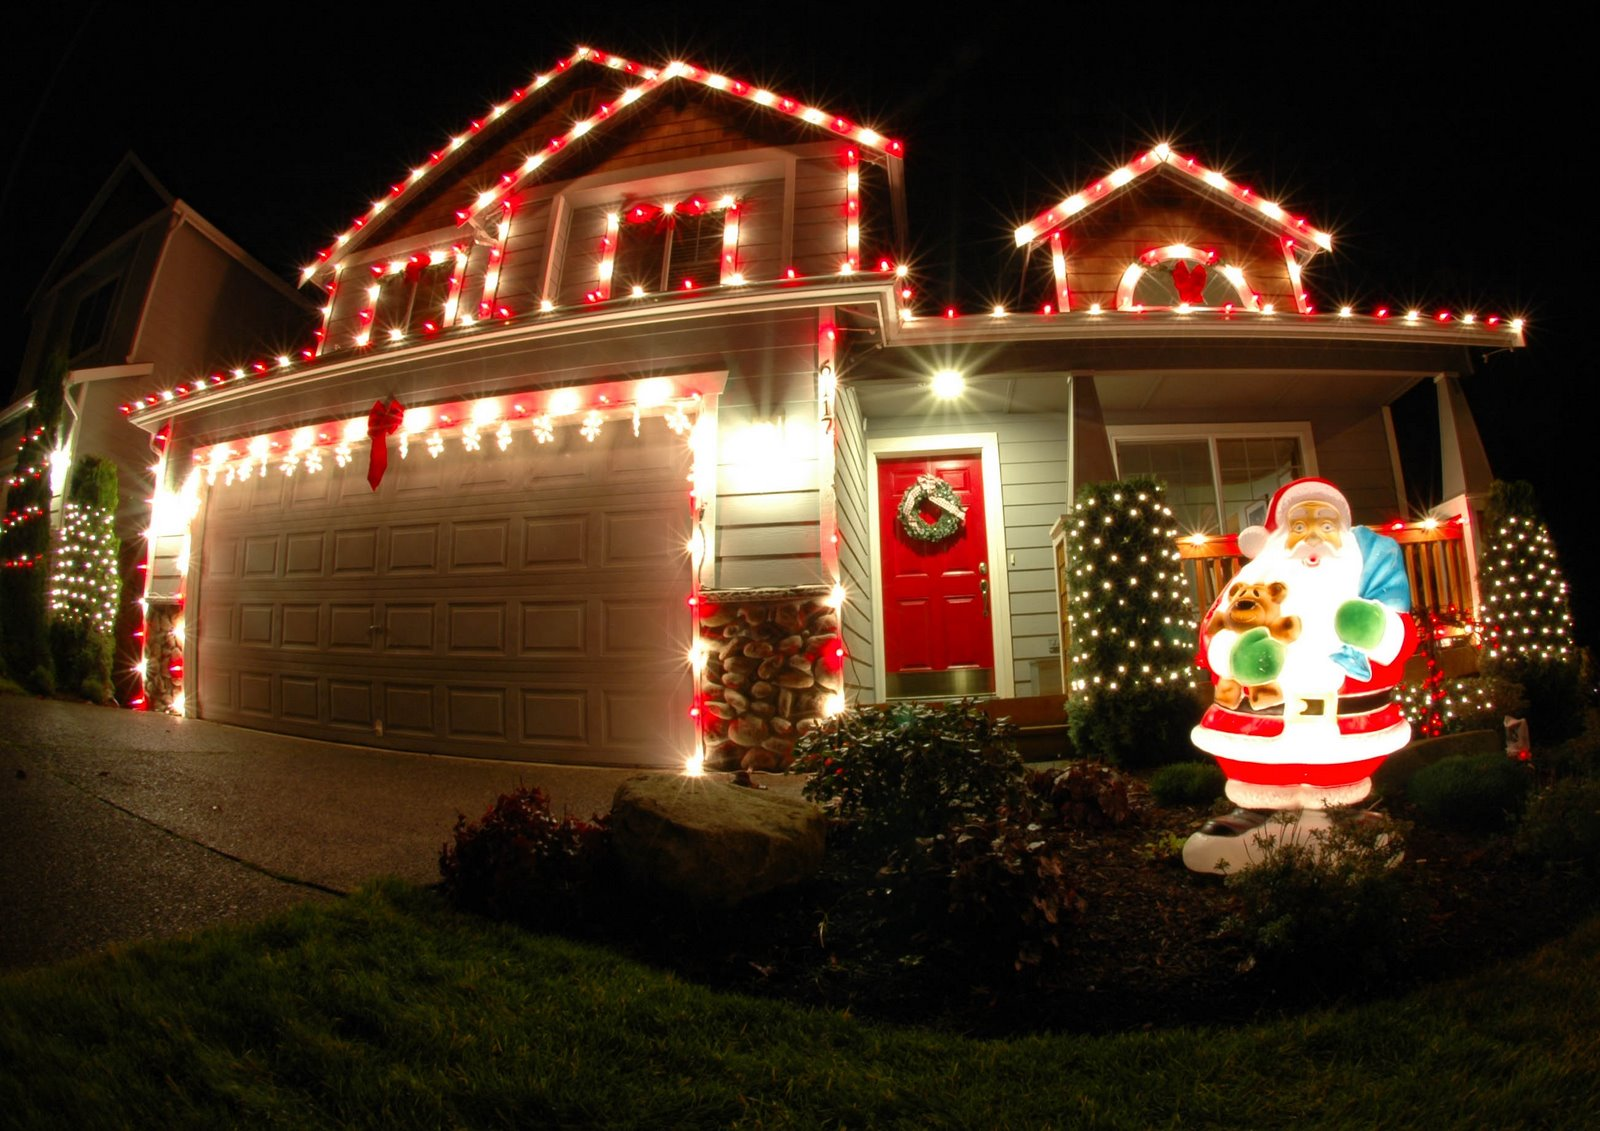 christmas house lighting ideas. image source christmas house lighting ideas e